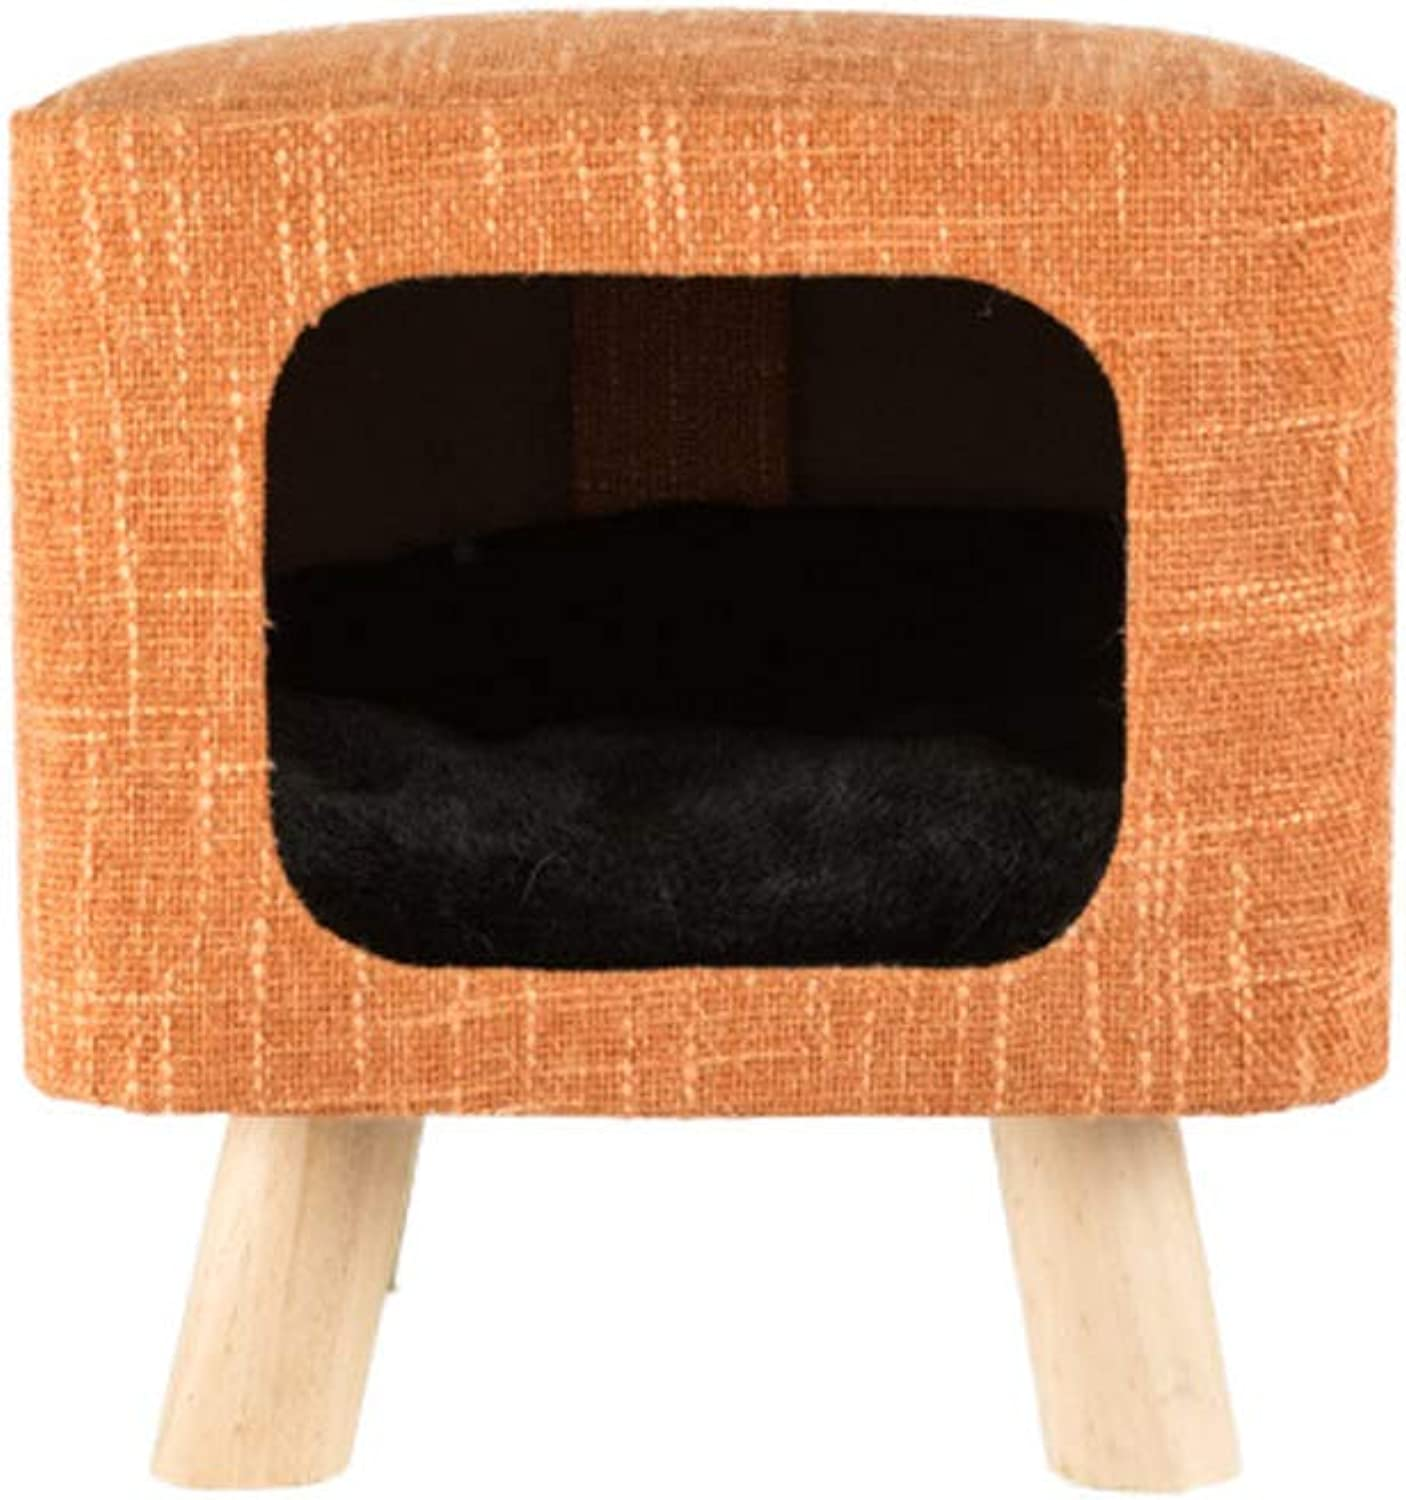 LiRongPing Honey pot cat, cat room, four seasons universal cat house, cat house, cat room, small stool, solid wood leg seat cat house (color   orange)